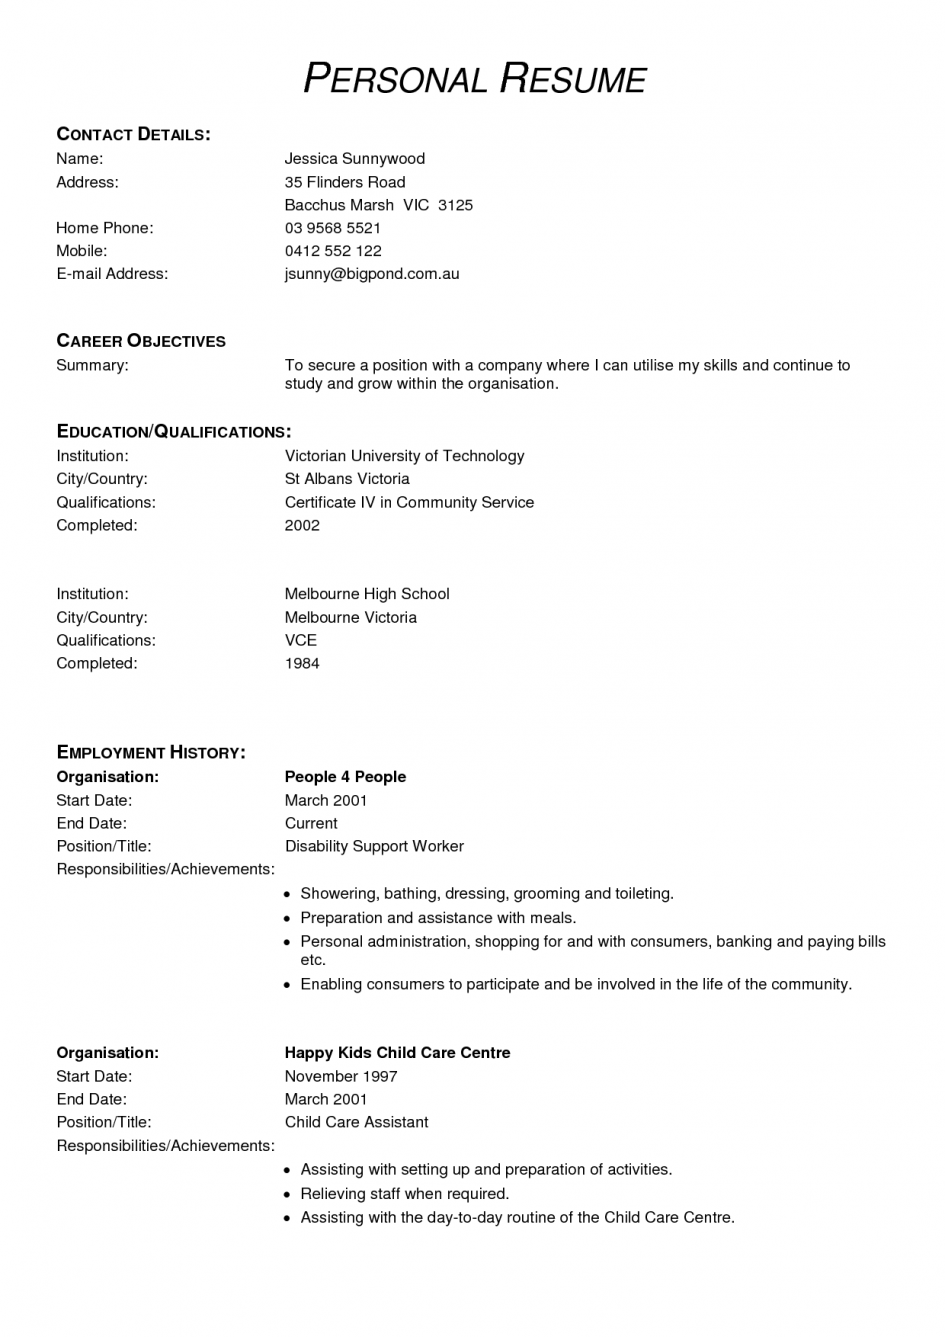 Resume template: VCE + work experience